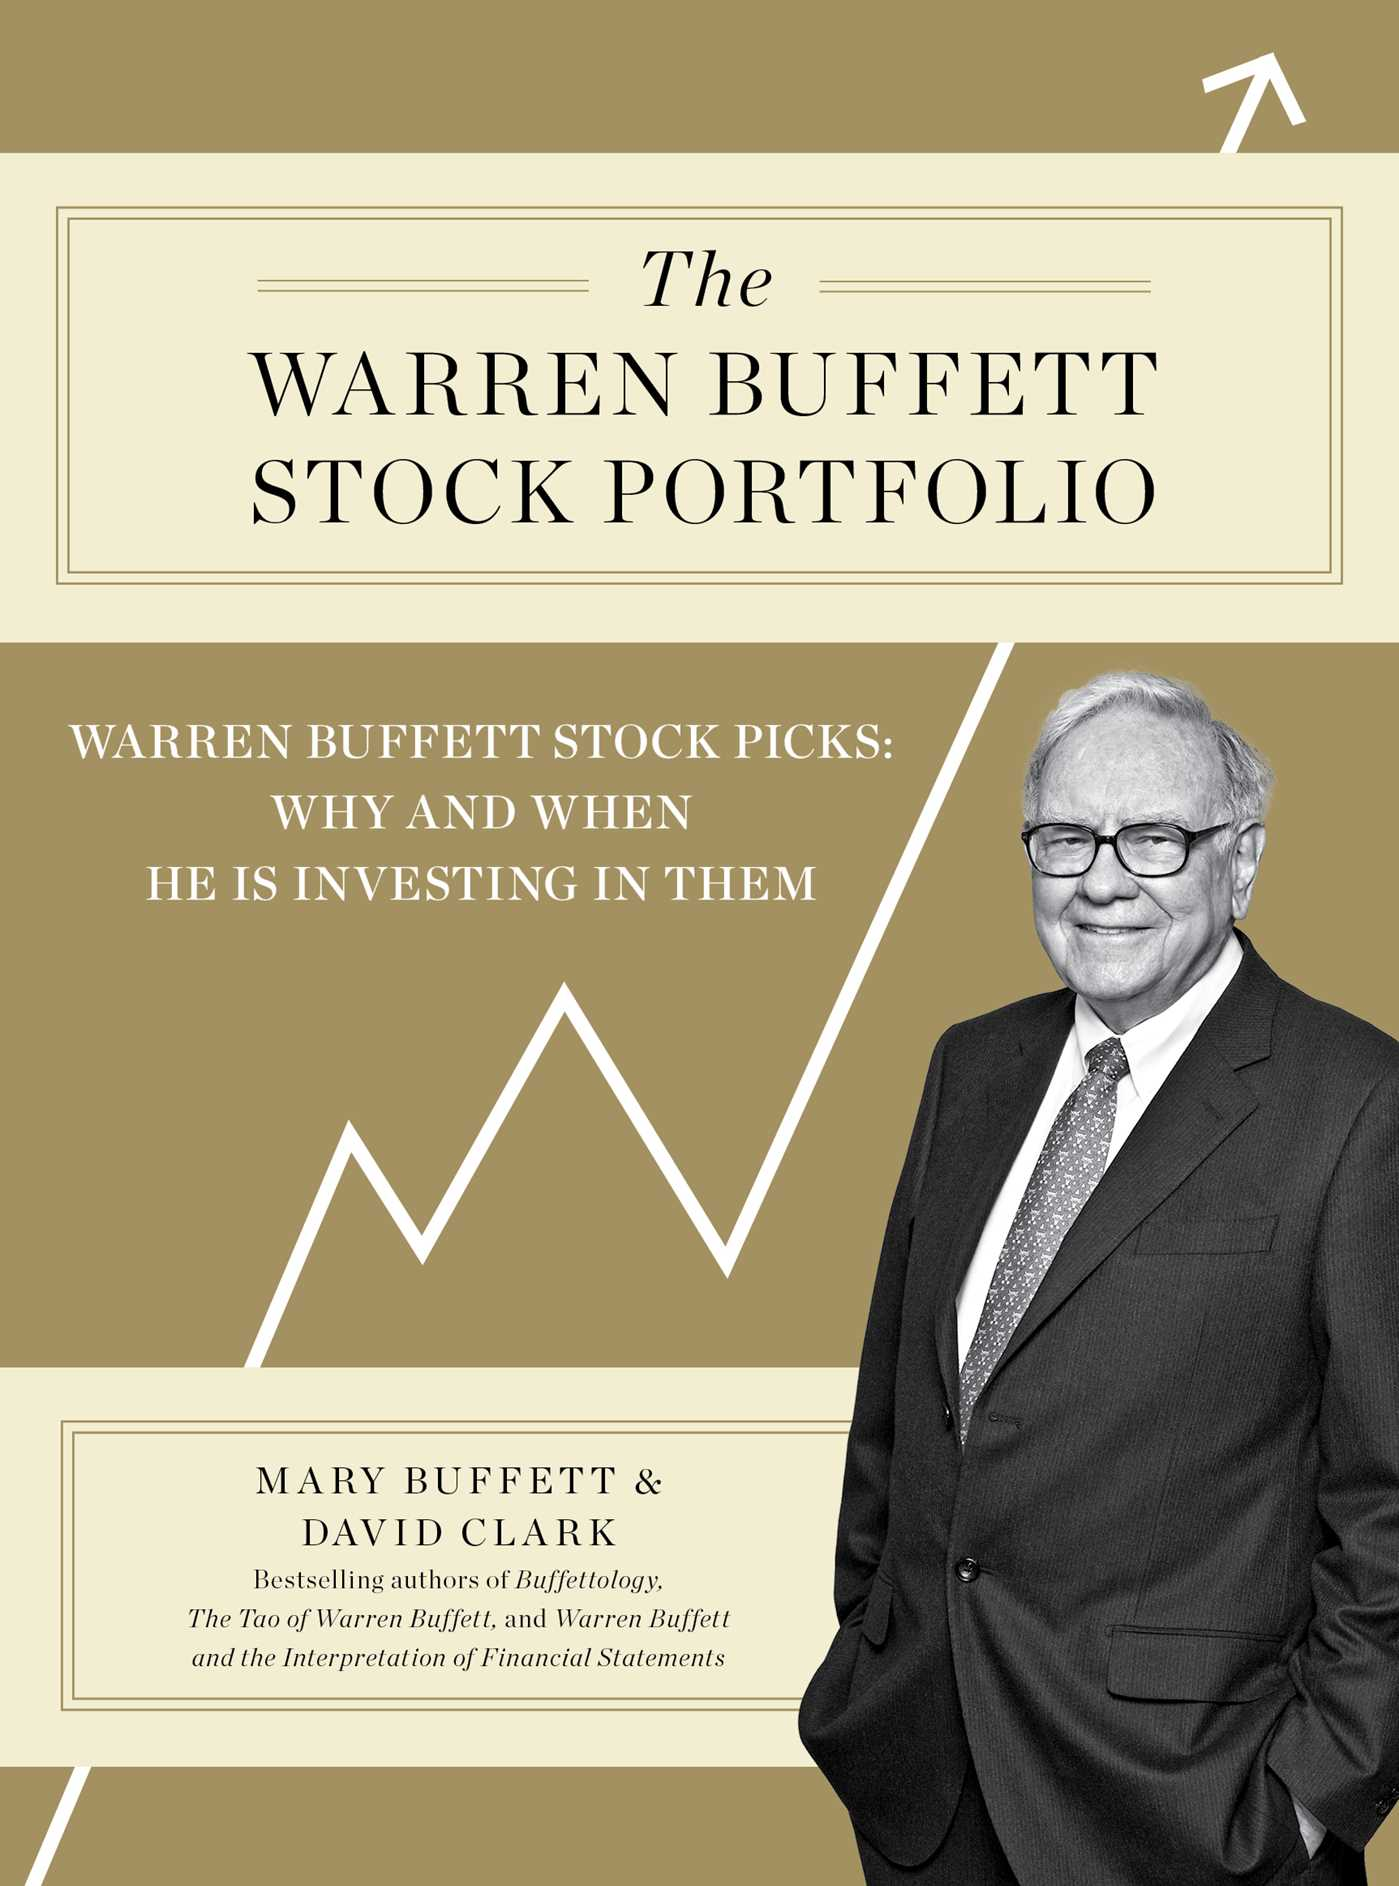 The warren buffett stock portfolio 9781451606621 hr